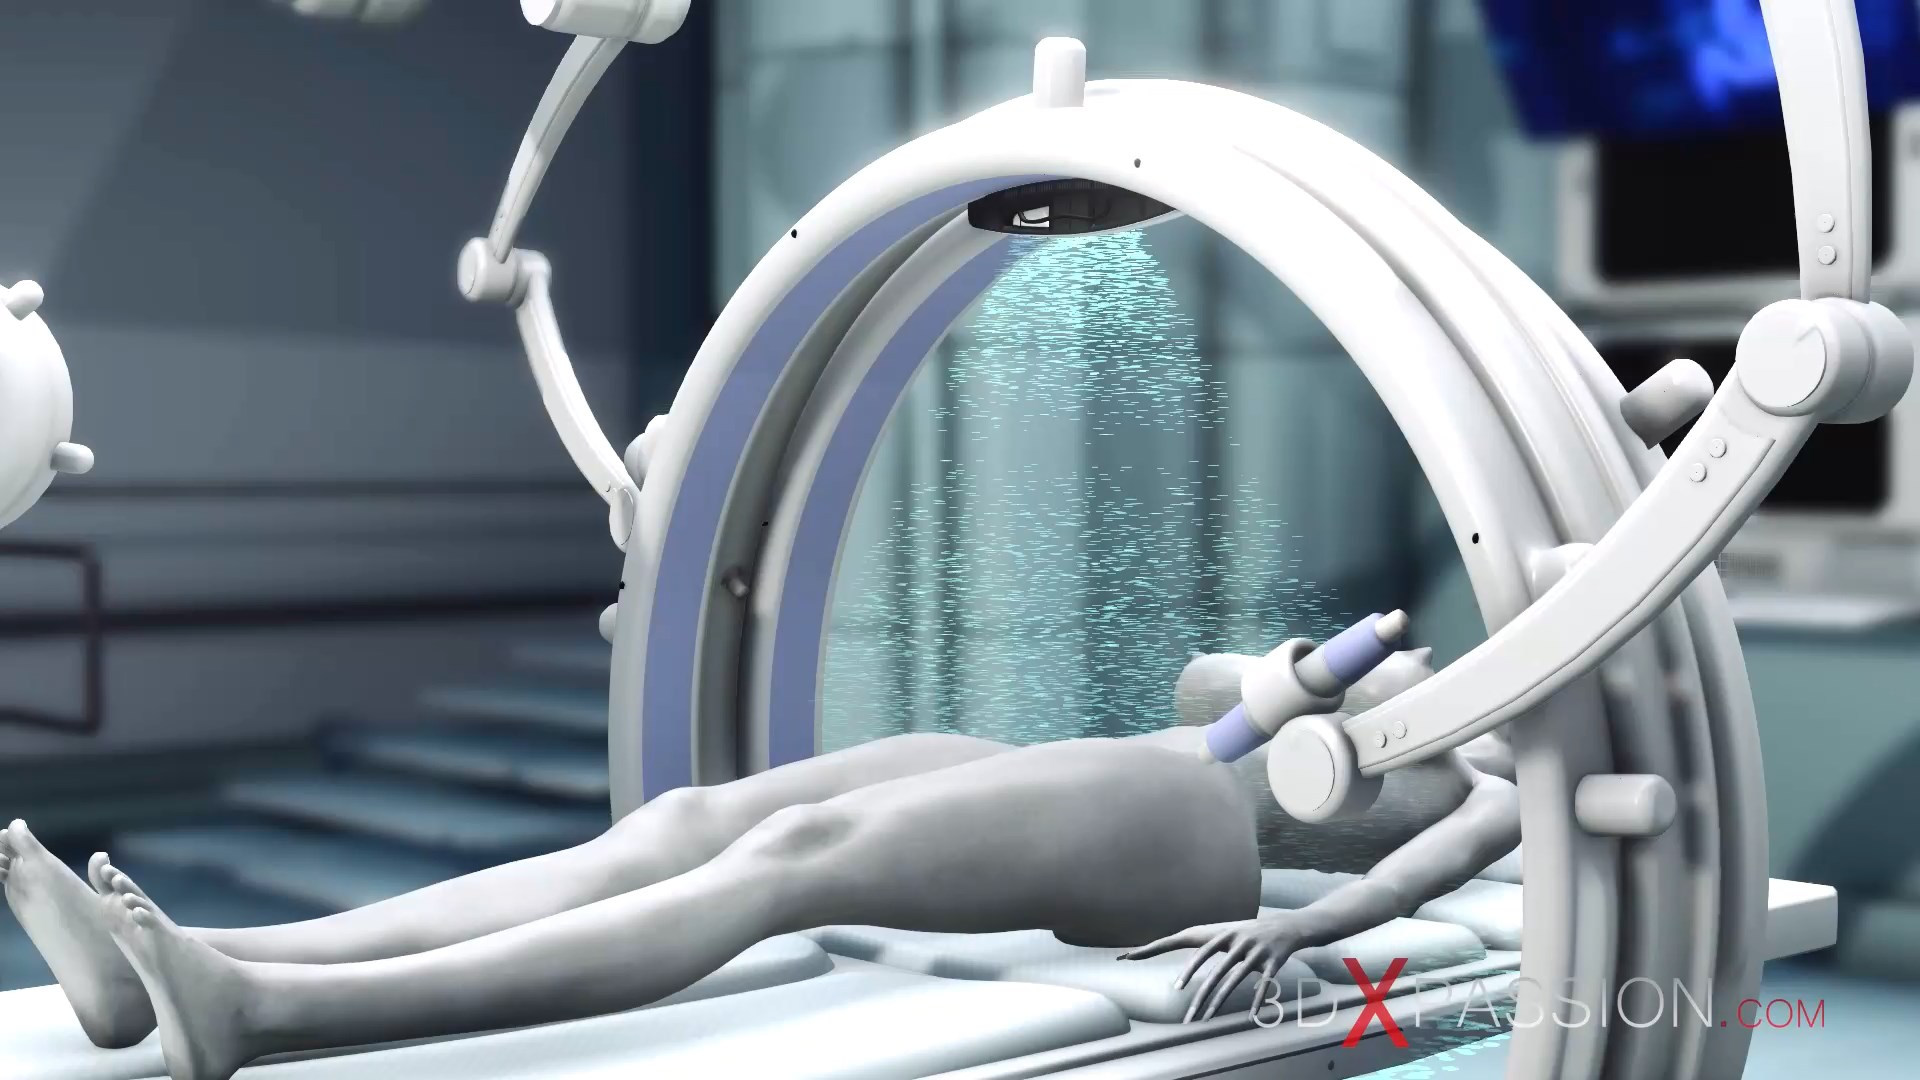 Sci-fi female android alien surgery room space station